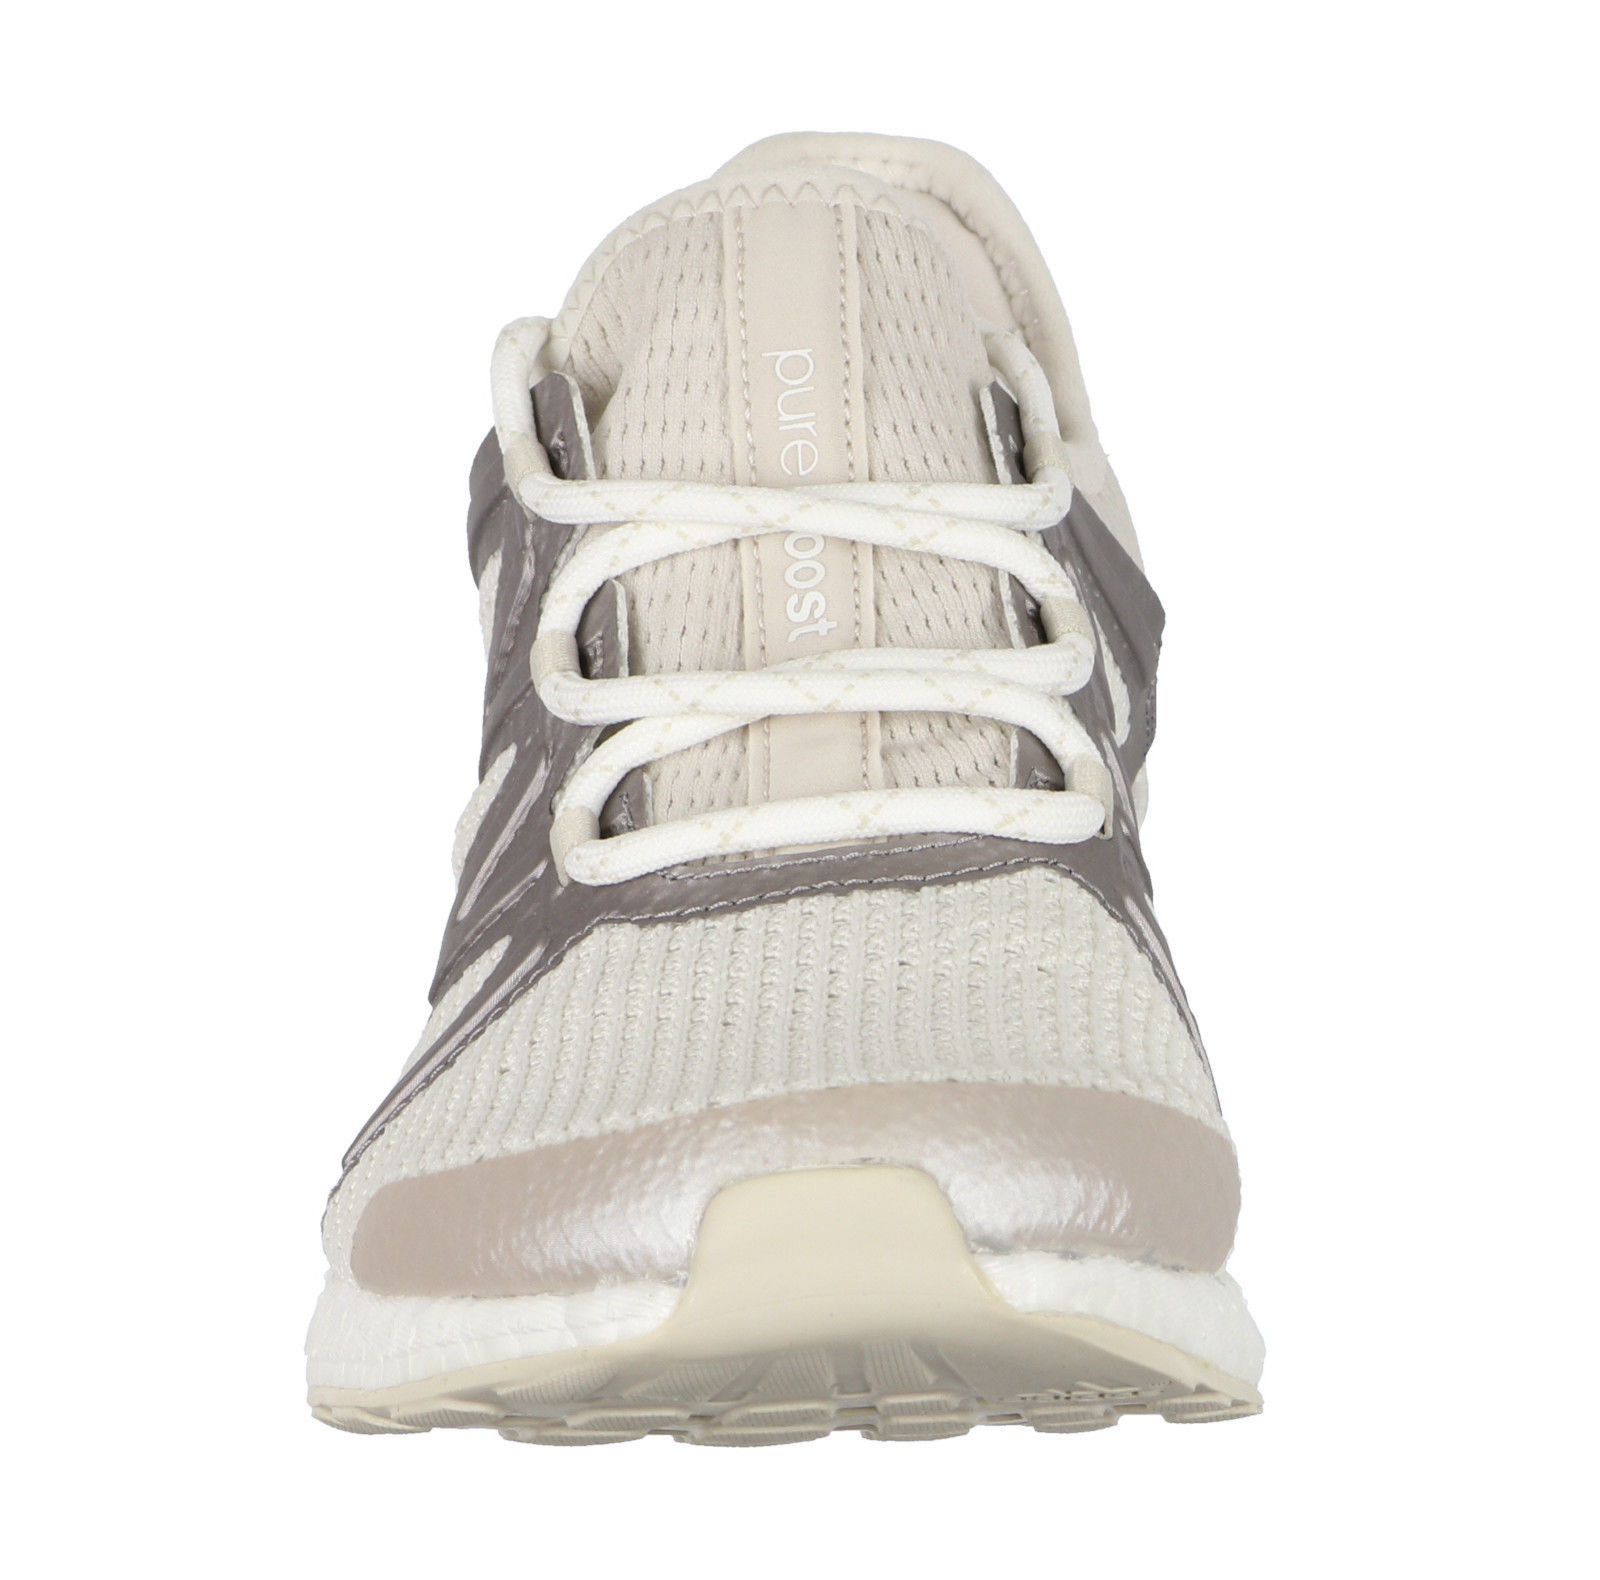 c903d13f986c9 ADIDAS Women s PureBOOST Xpose Running Shoes sz 9 White Clear Brown Silver